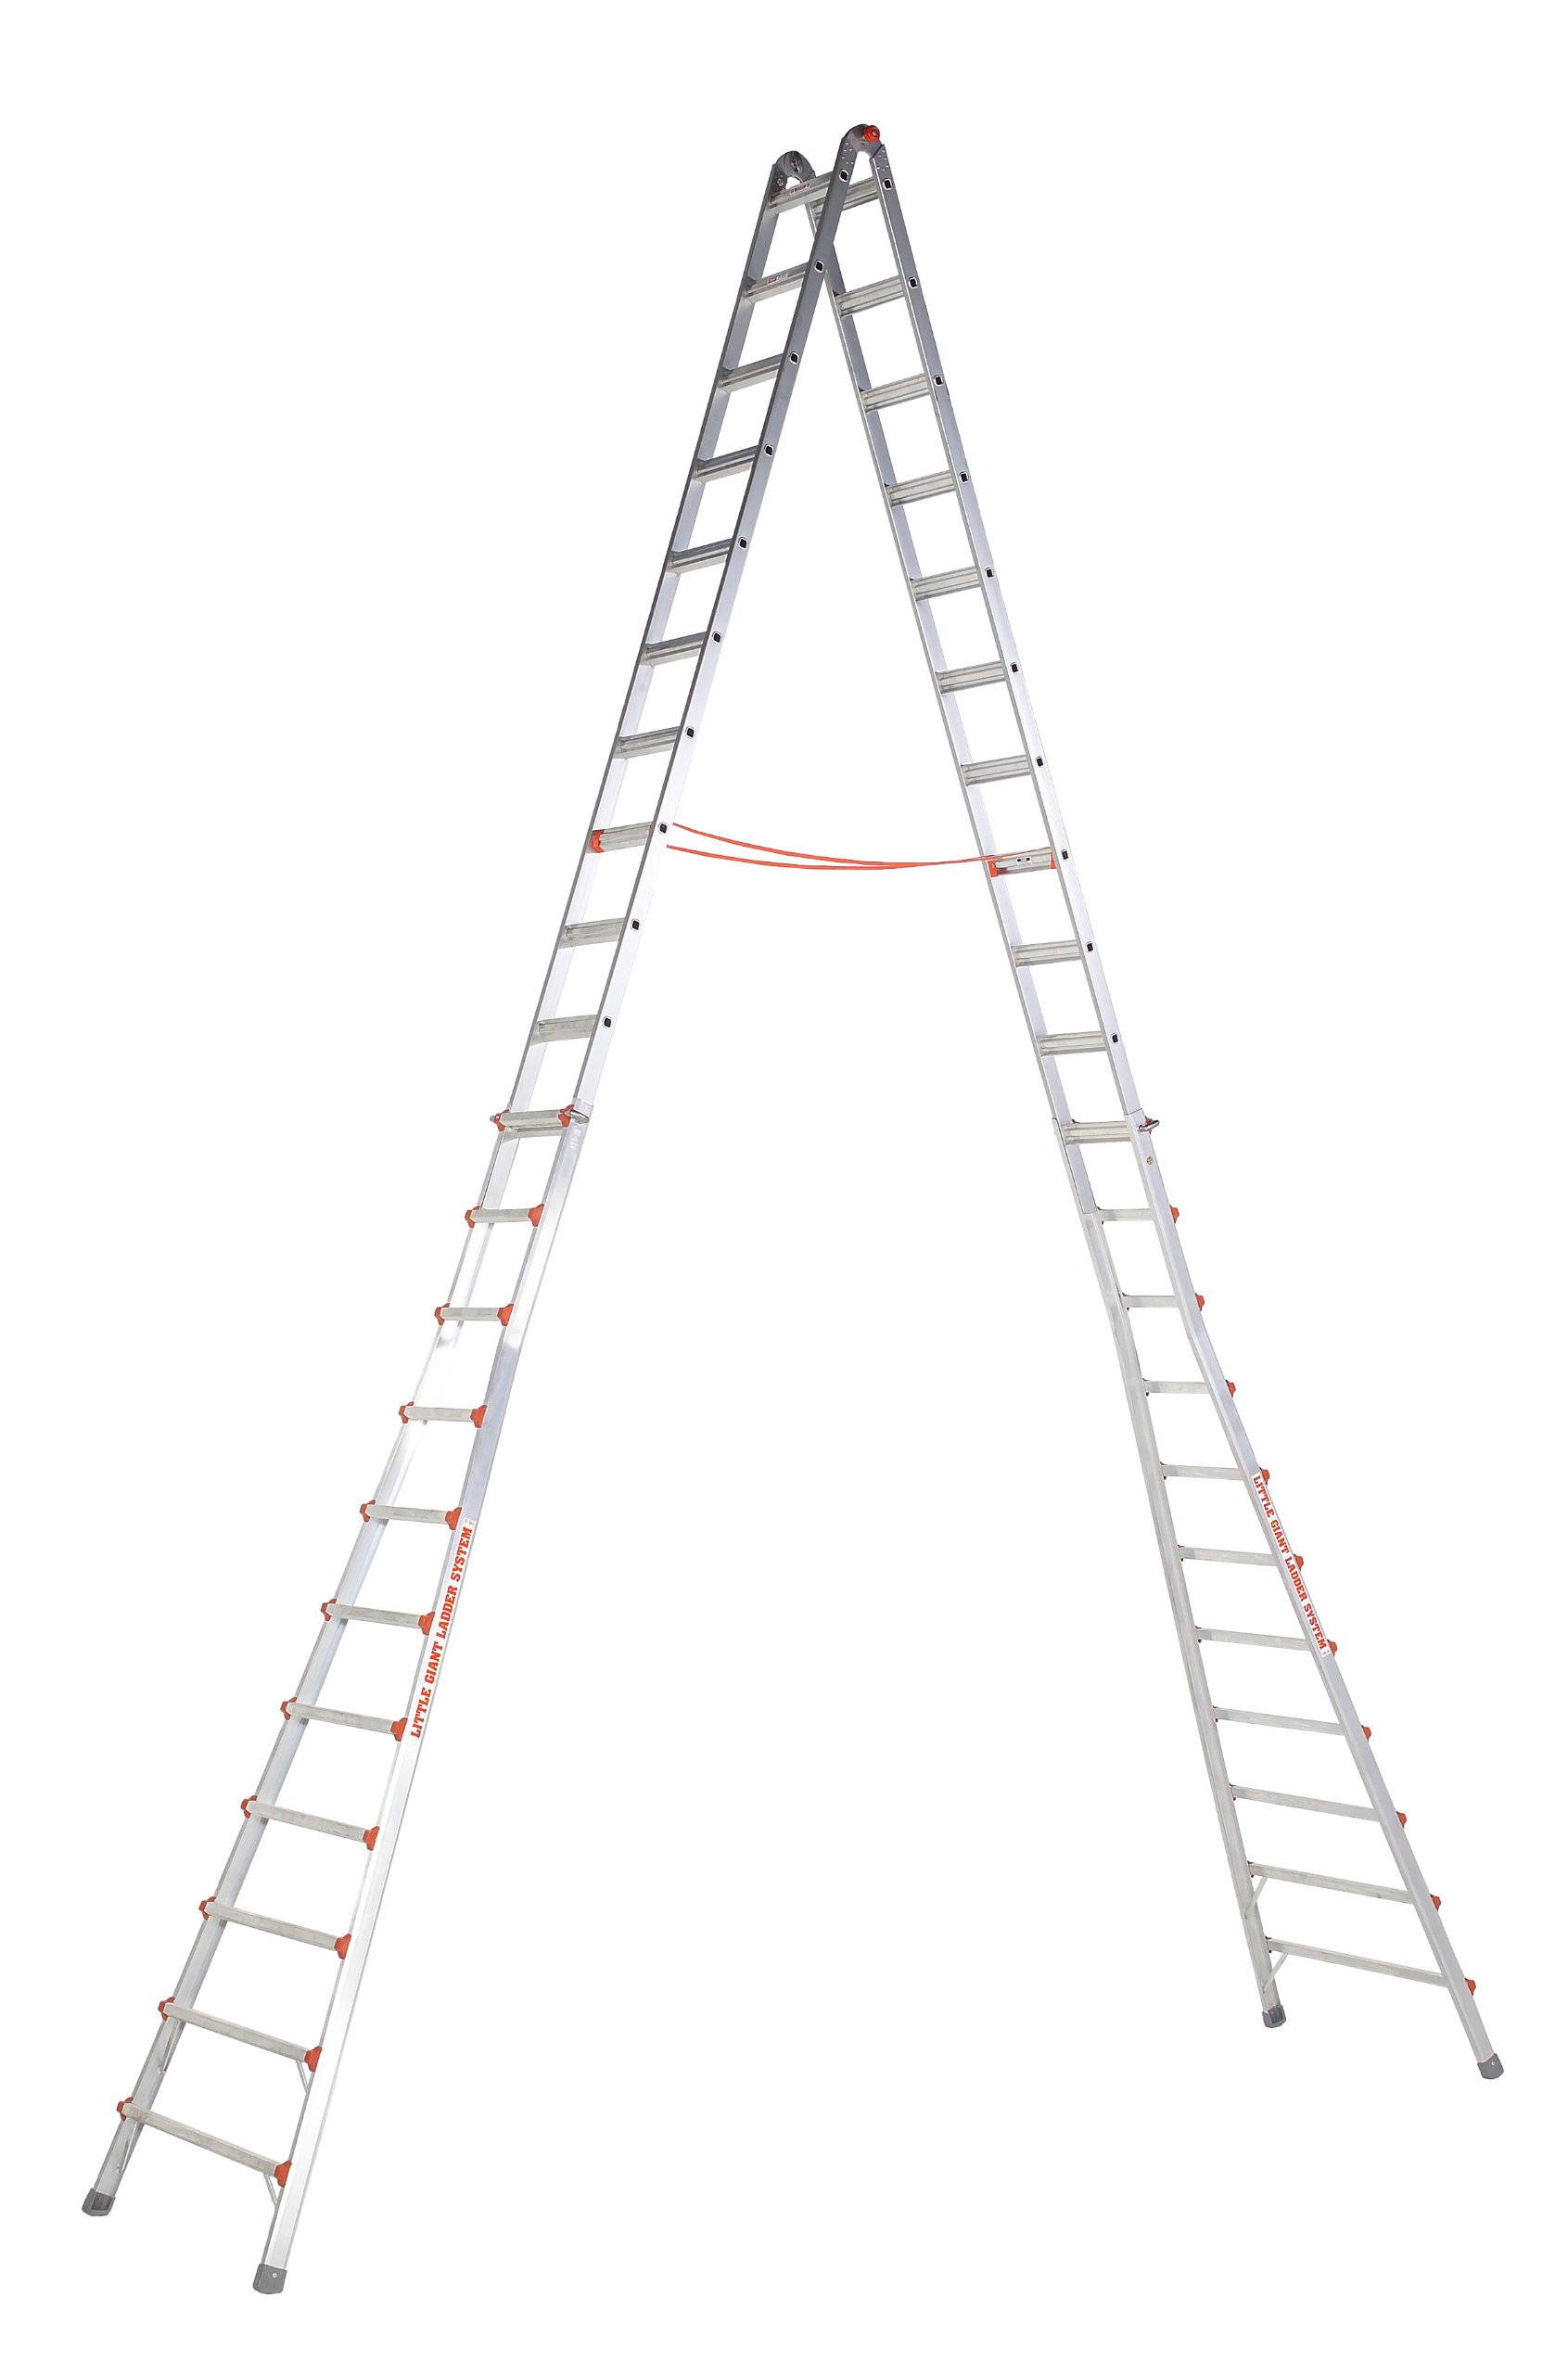 Little Giant Ladders 10121 SkyScraper 300-Pound Duty Rating Adjustable Stepladder, 21-Foot